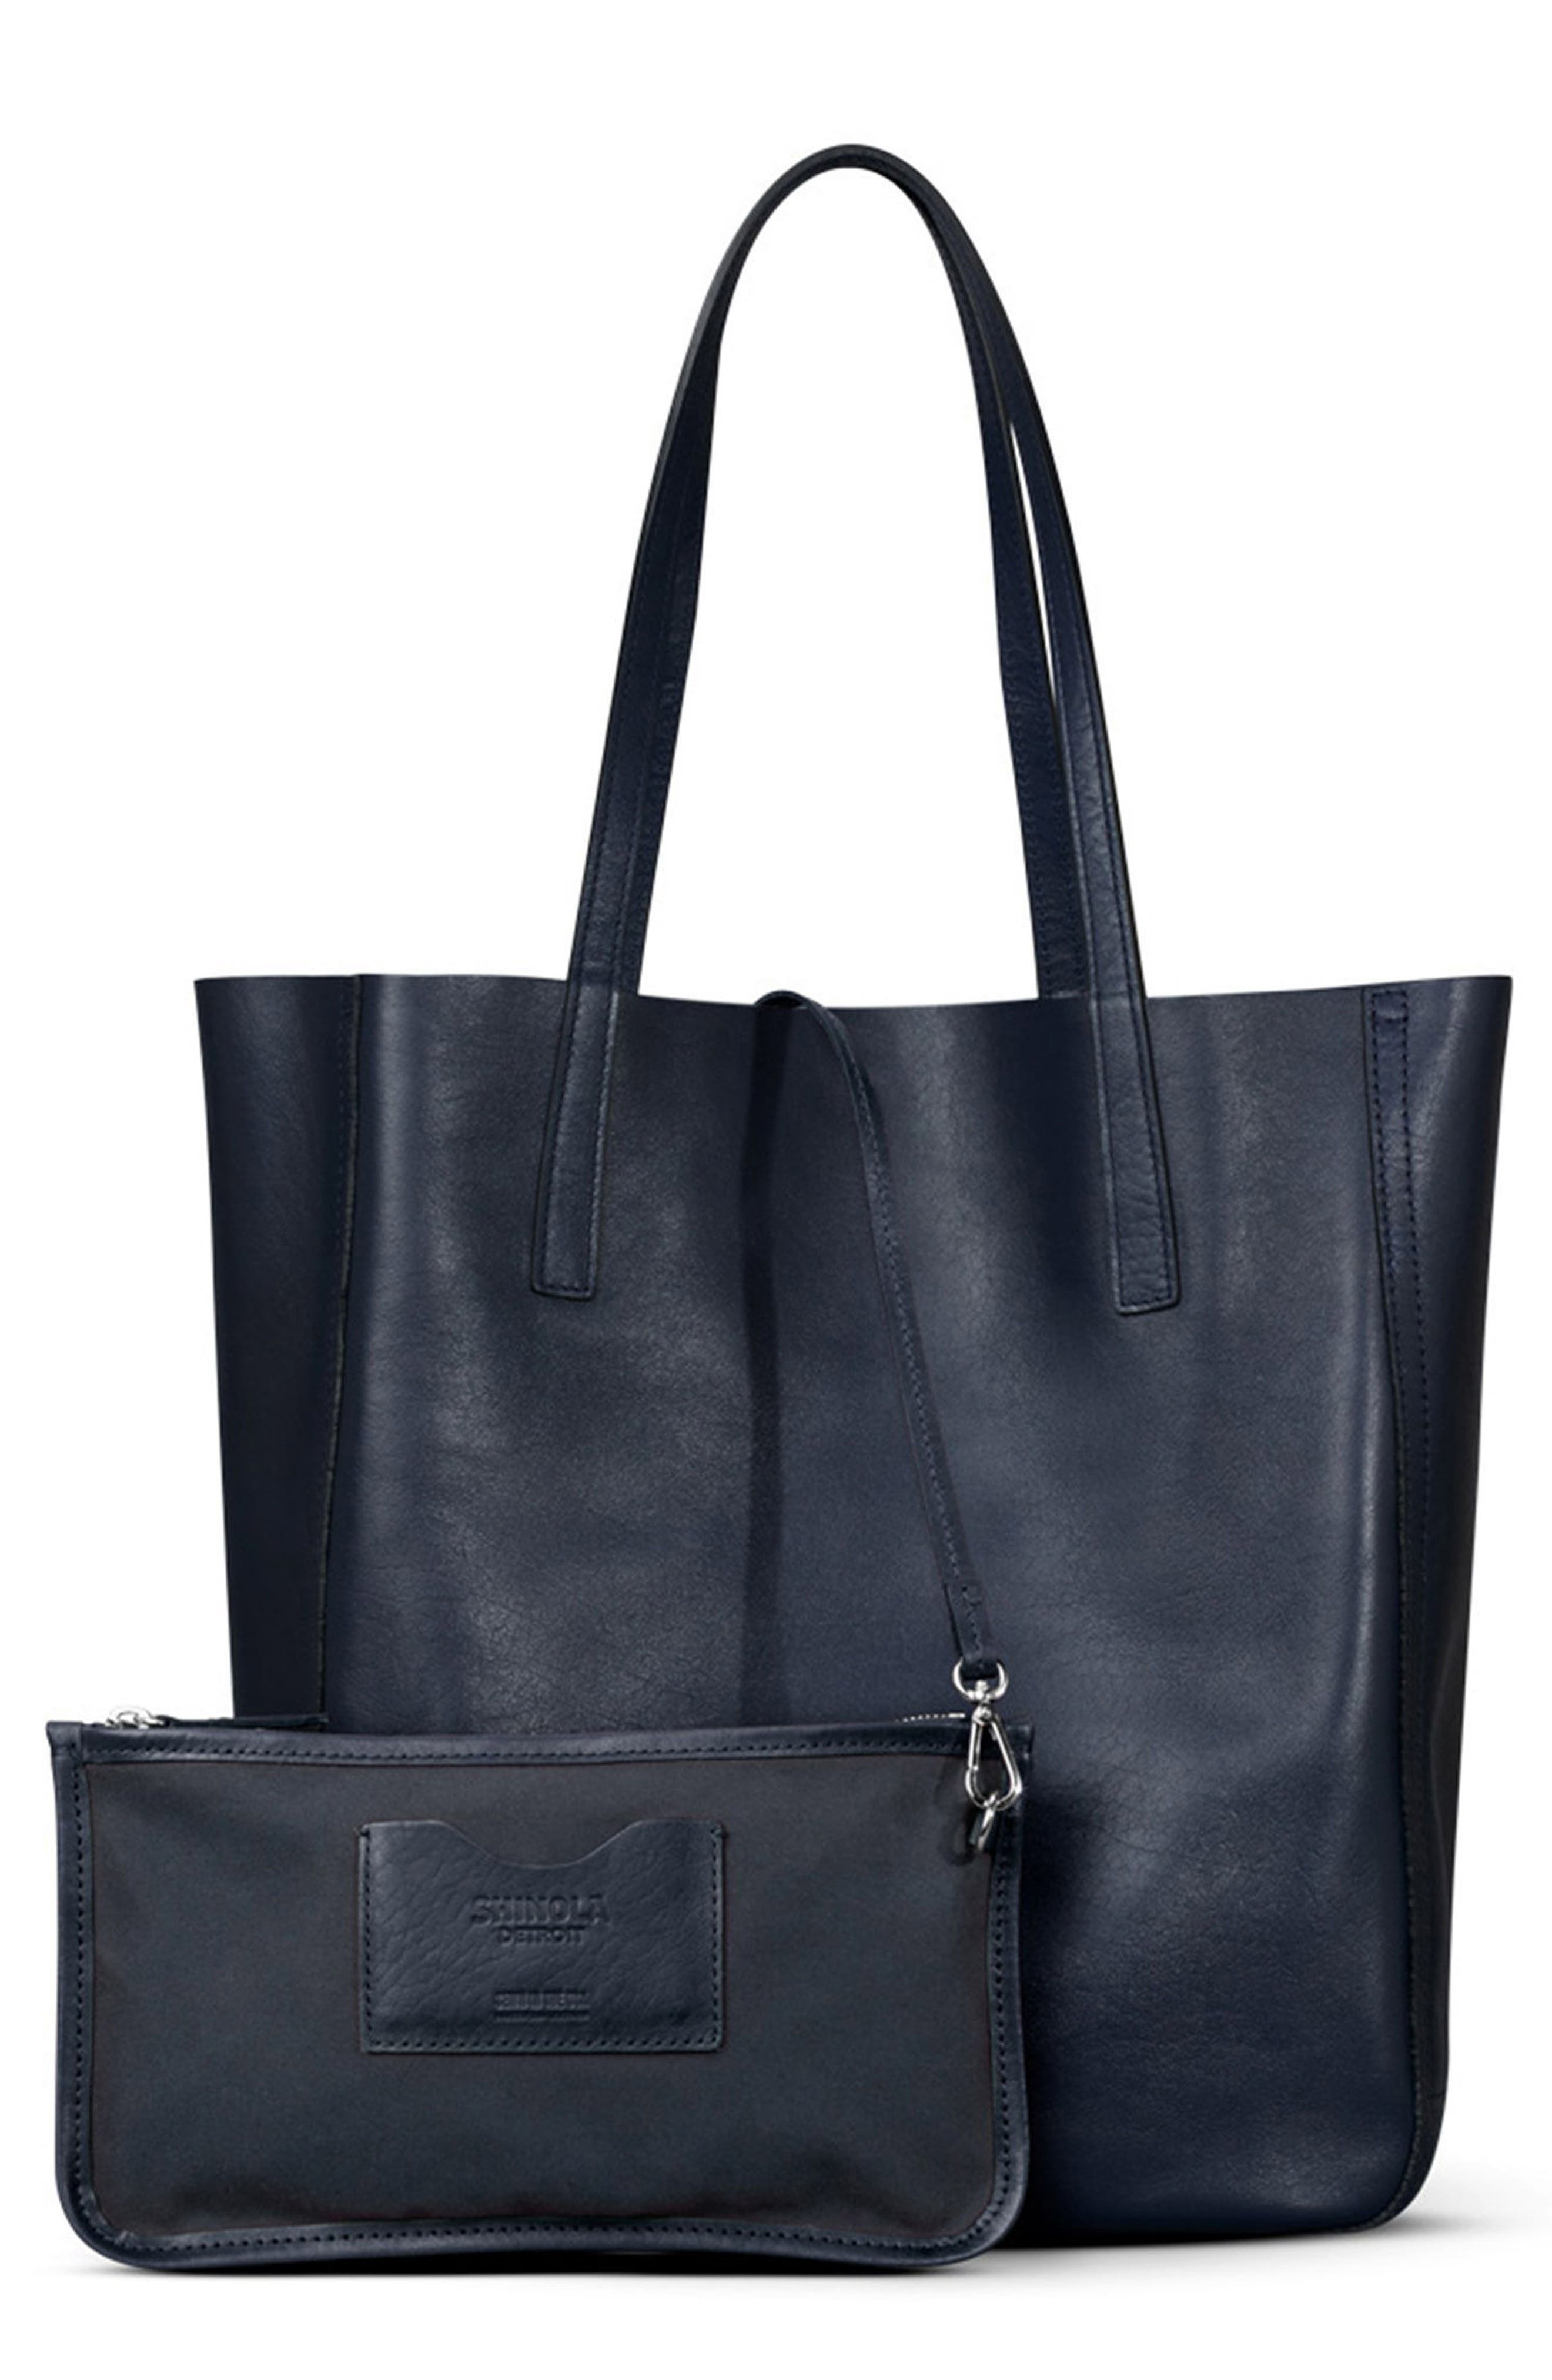 Shinola Medium Leather Shopper (Nordstrom Exclusive)